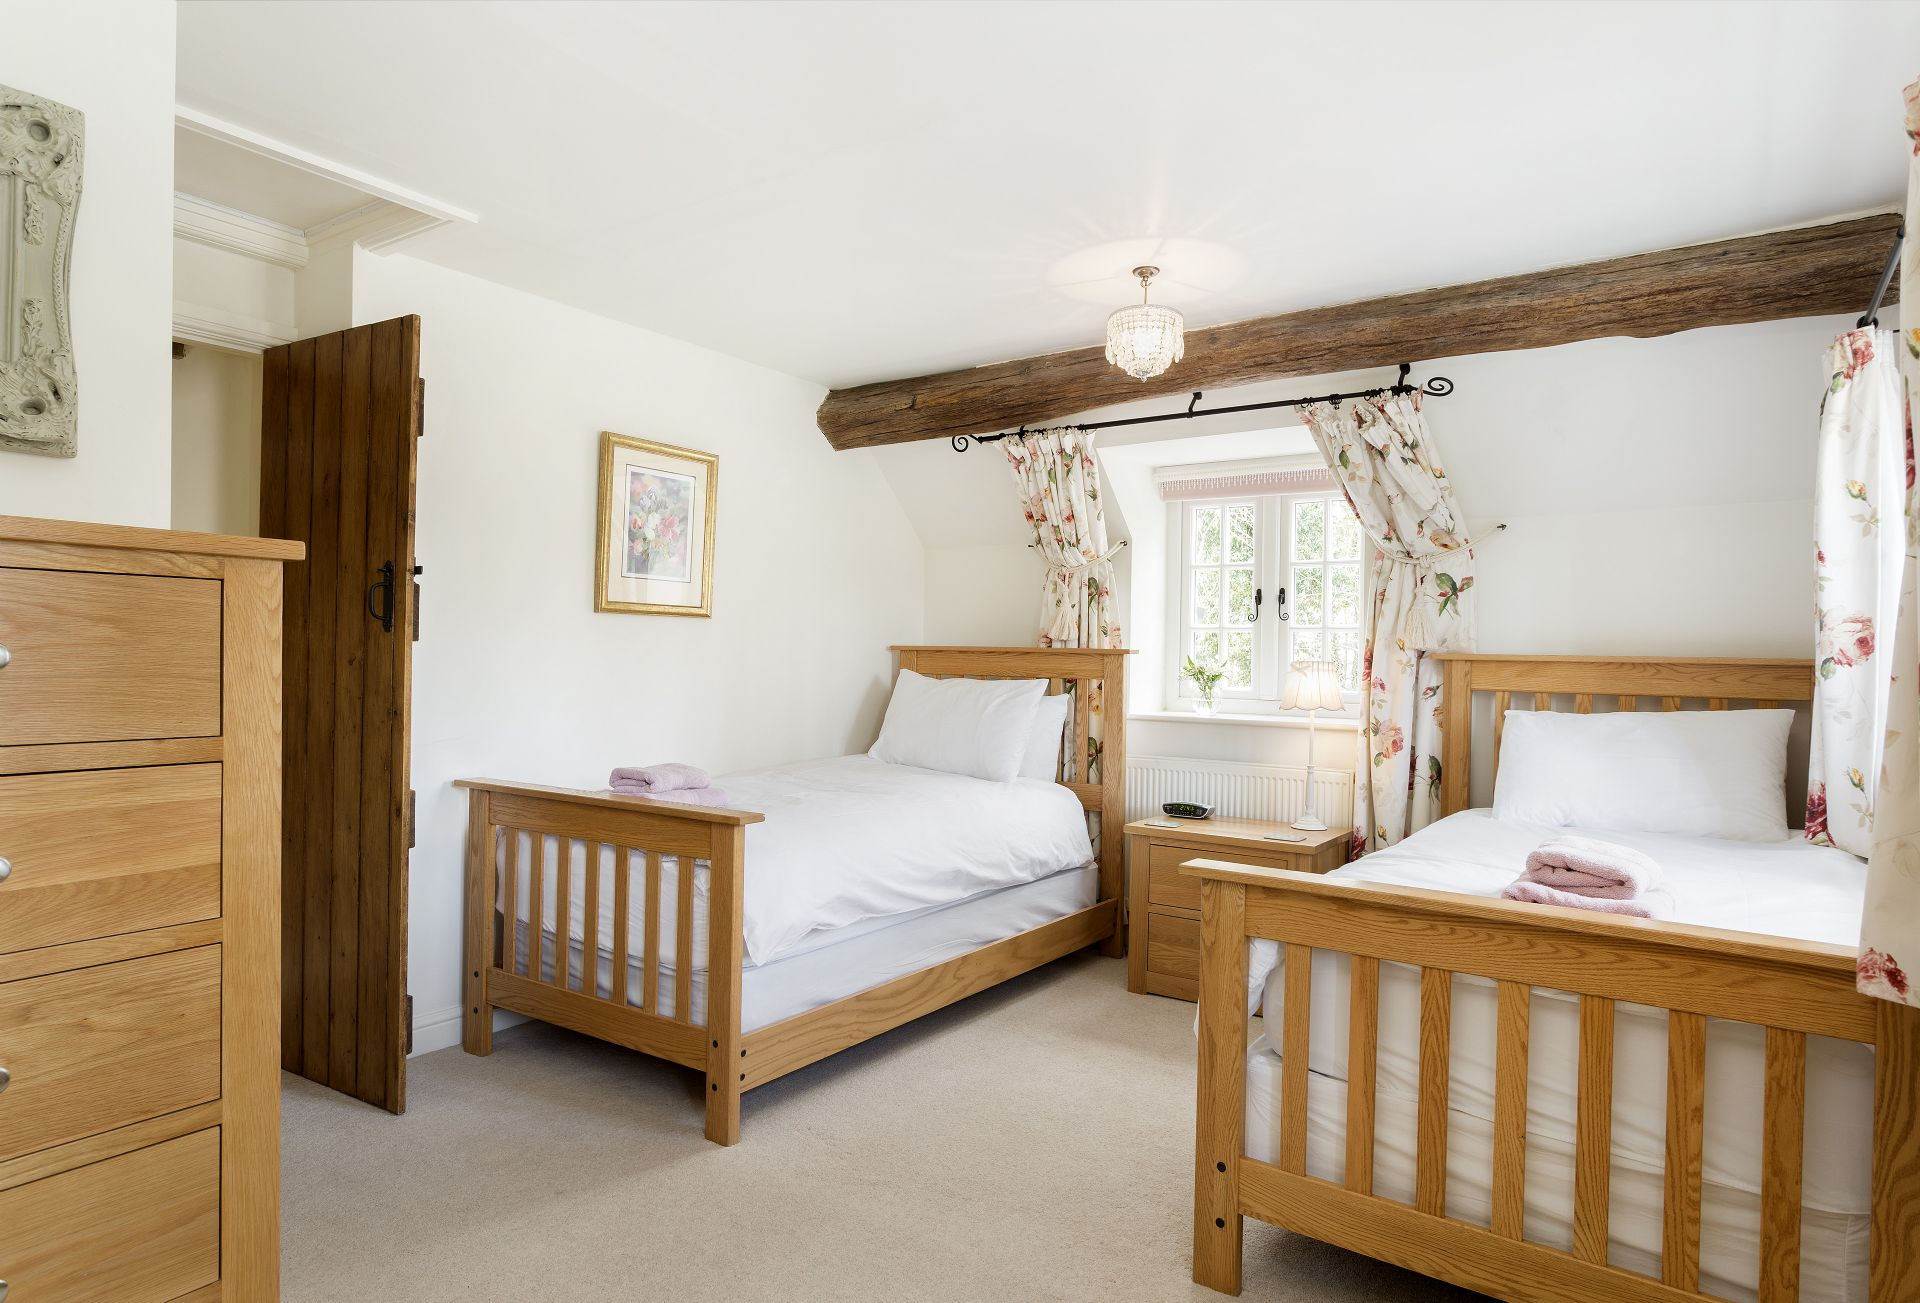 First floor: Second bedroom with two 3' single beds